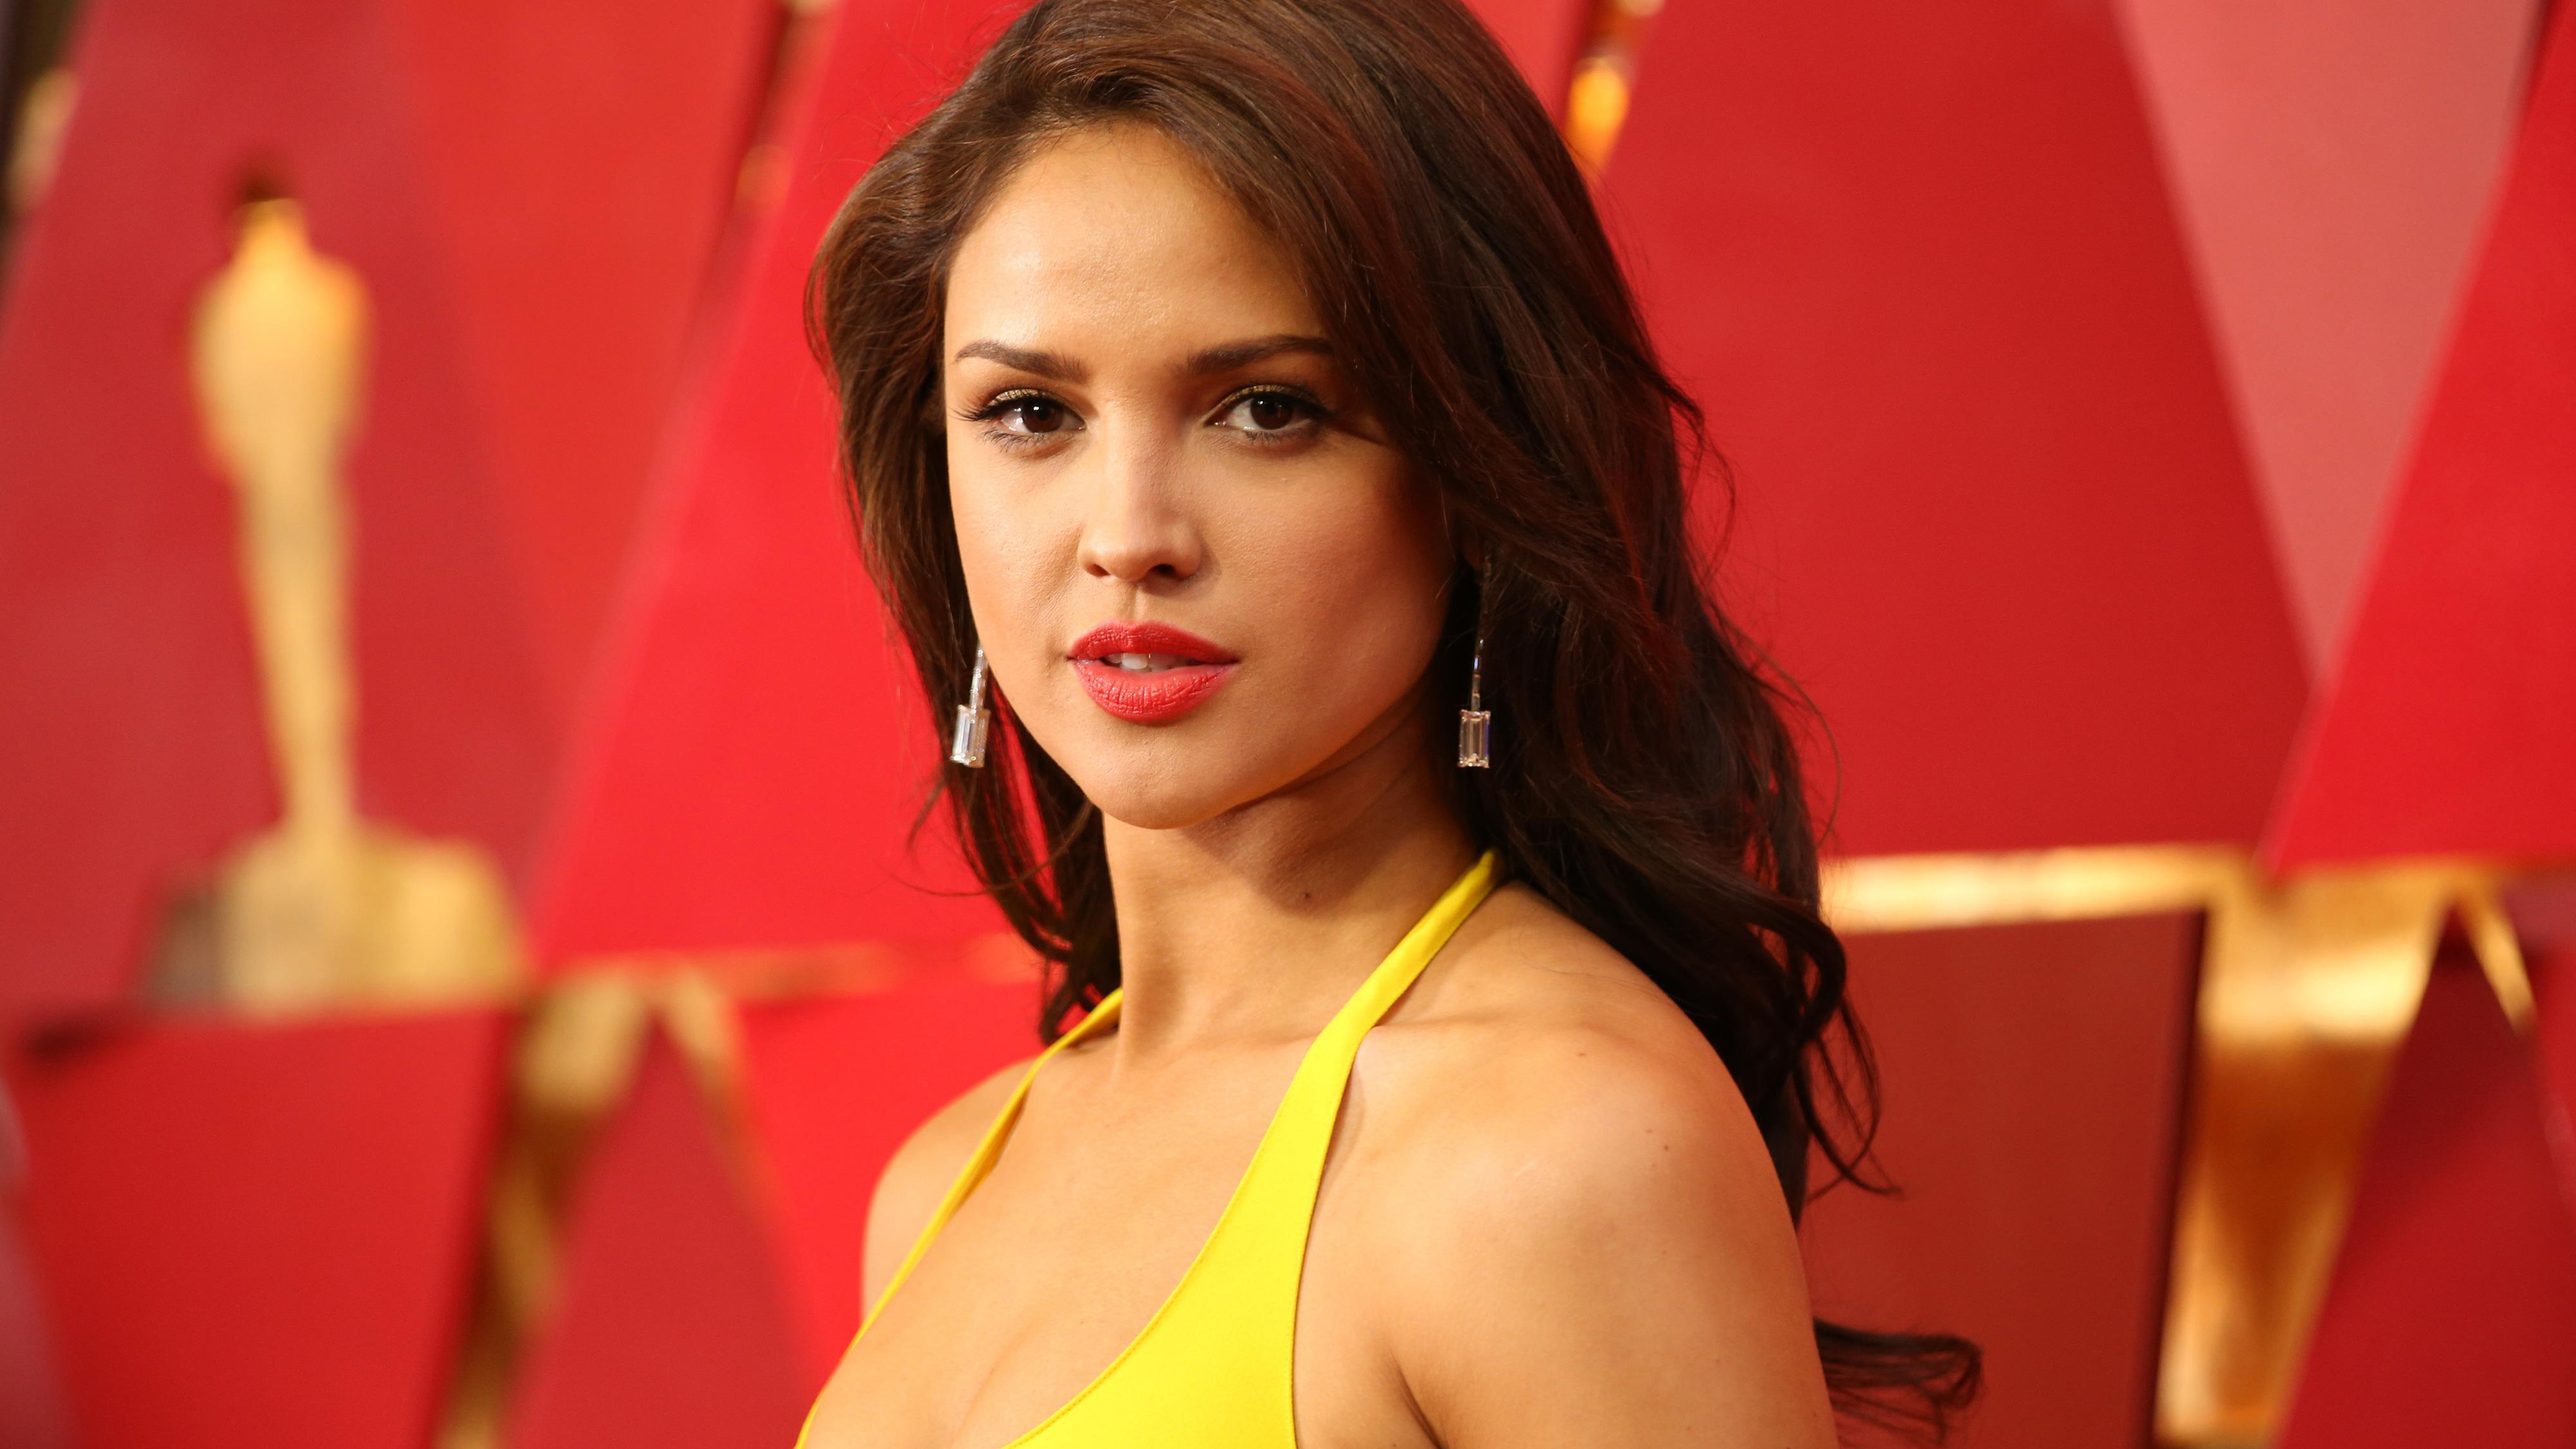 eiza gonzalez met gala 2019 1536947835 - Eiza Gonzalez Met Gala 2019 - tv shows wallpapers, hd-wallpapers, girls wallpapers, eiza gonzalez wallpapers, celebrities wallpapers, 4k-wallpapers